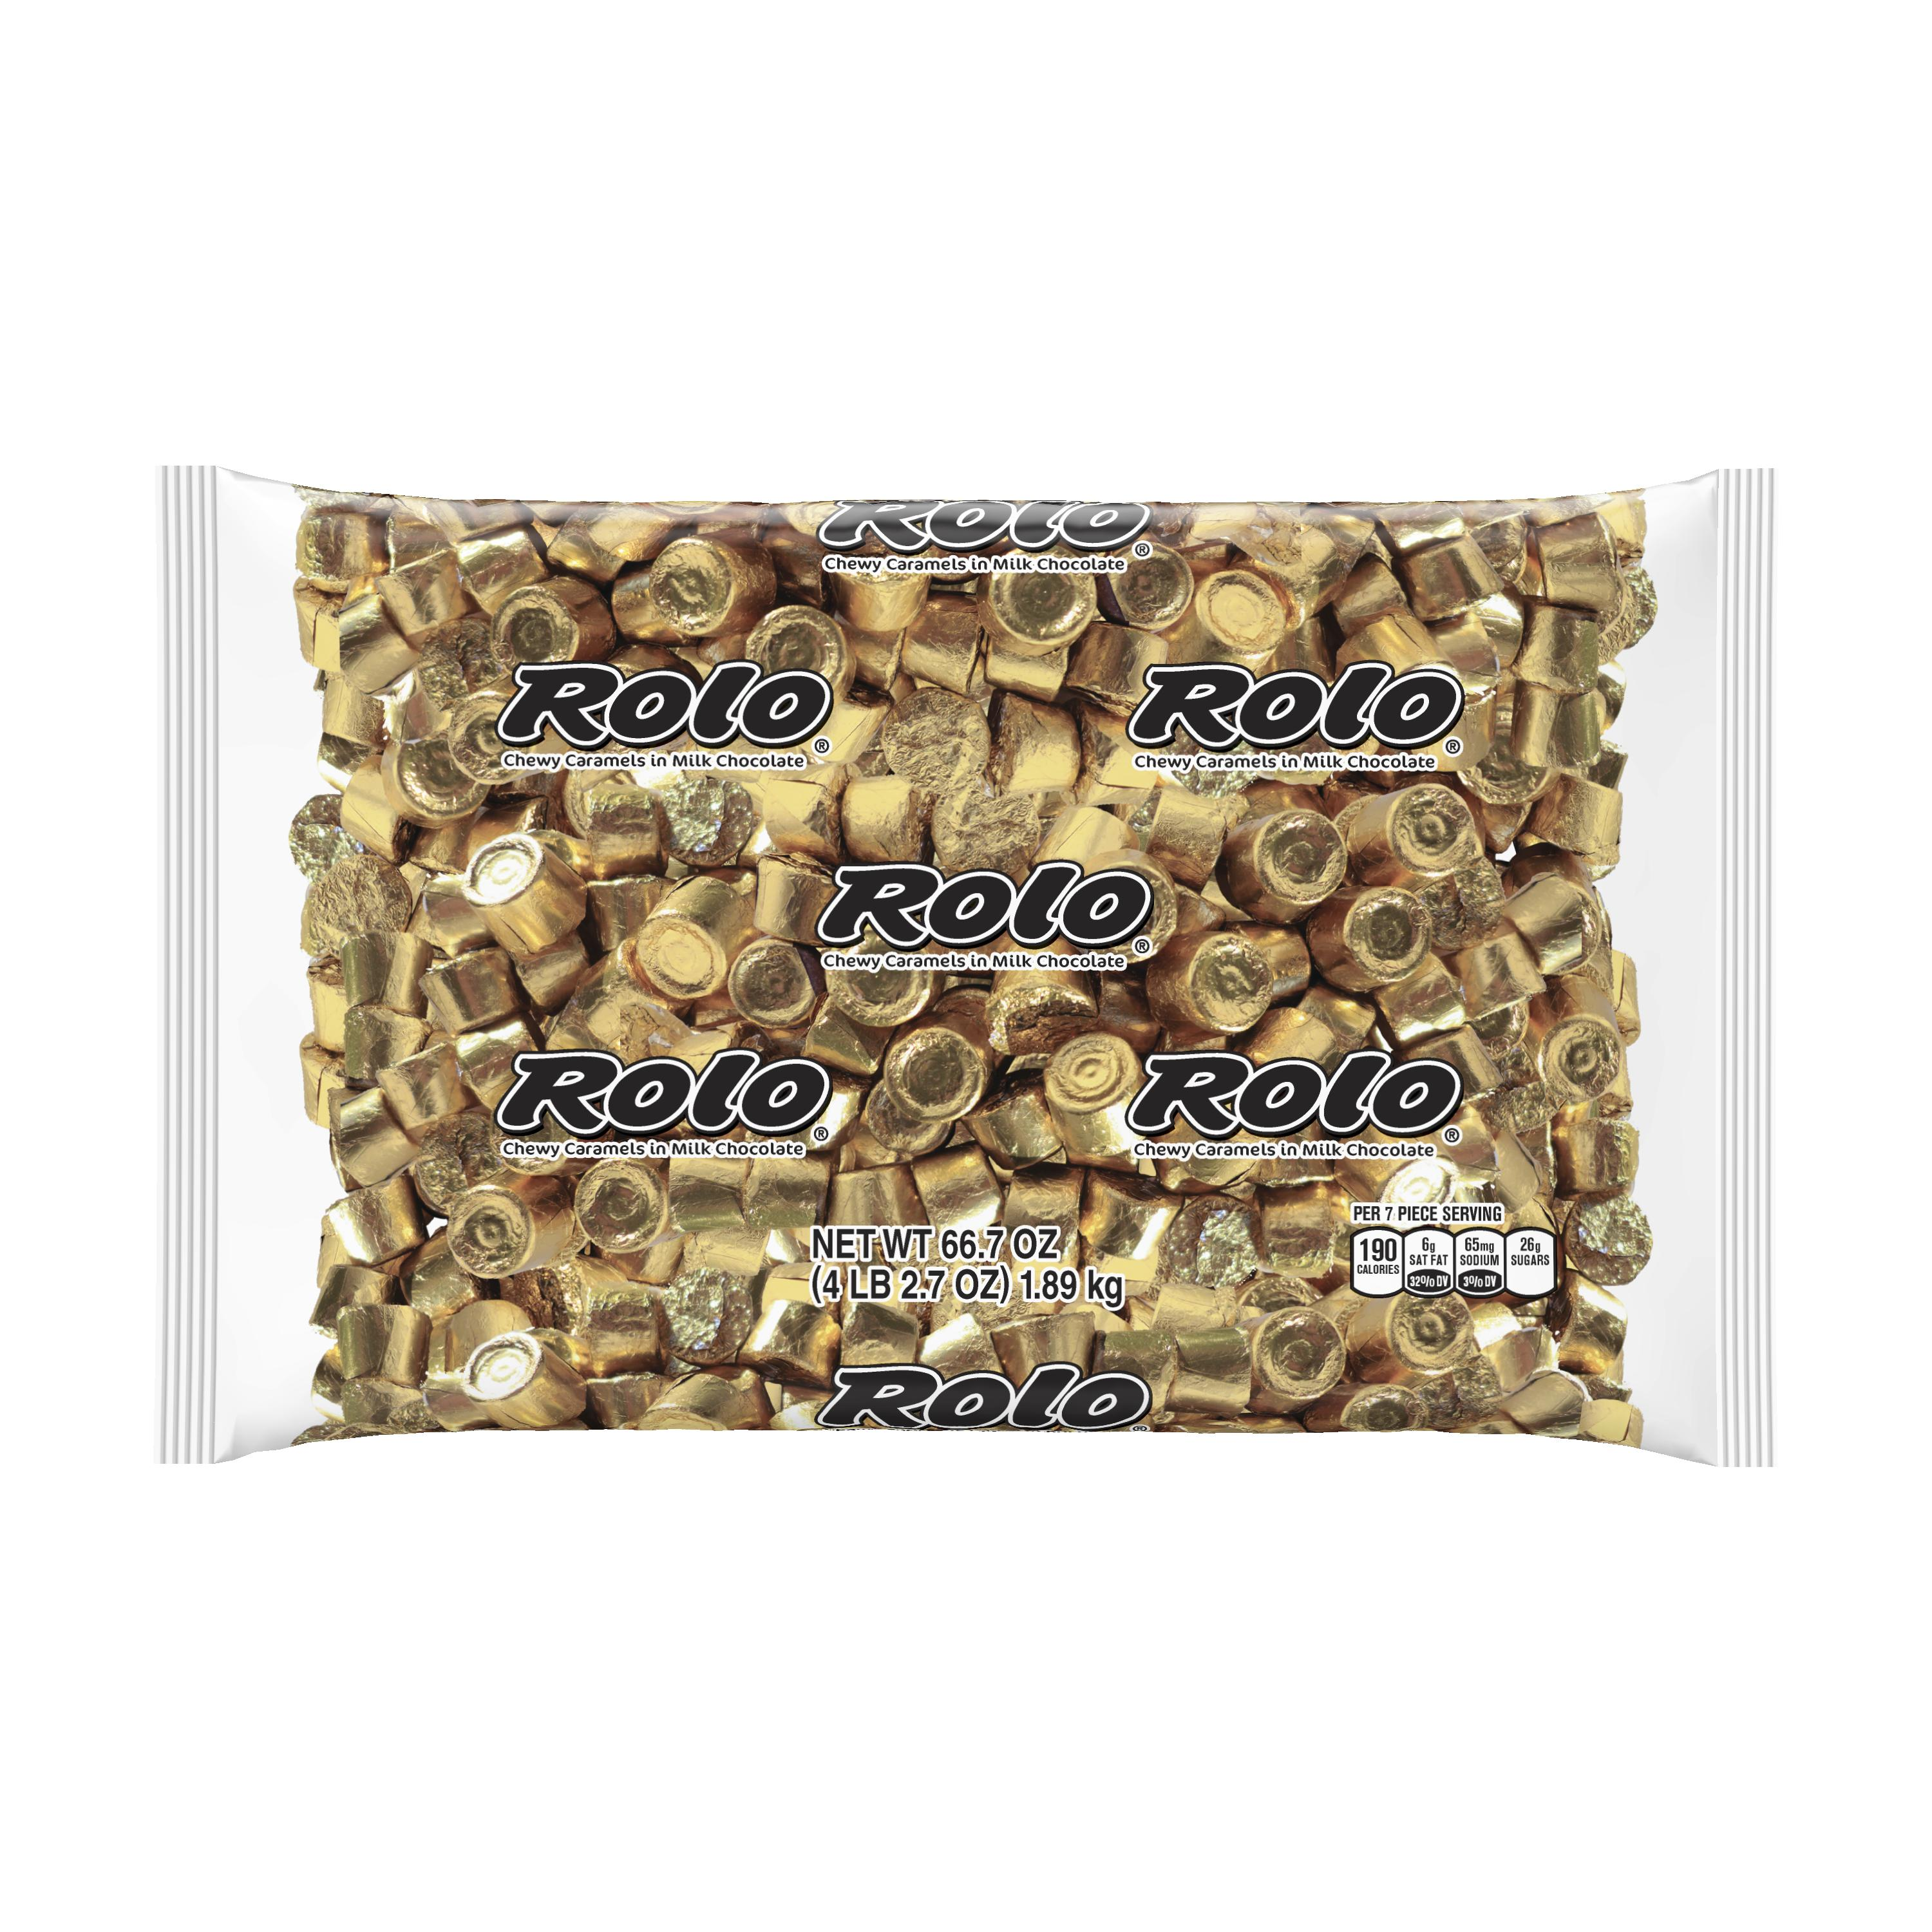 Rolo, Chewy Caramels Milk Chocolate Candy Gold Foil, 66.7 Oz.